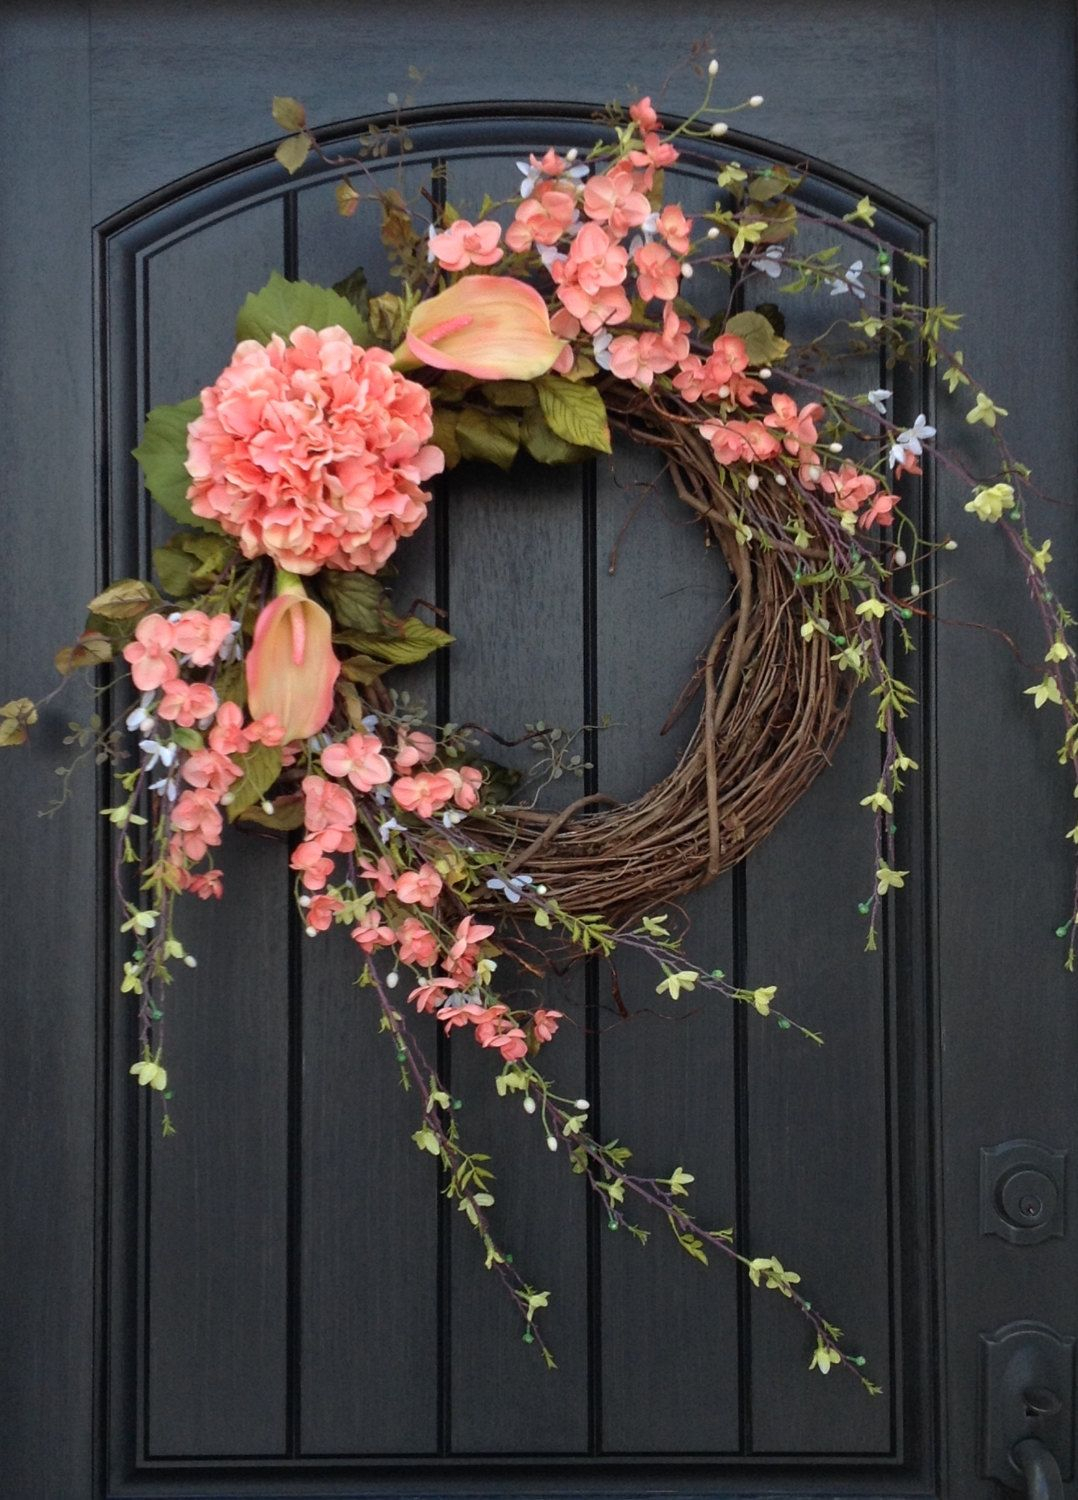 Spring Wreath Summer Wreath Floral White Green Branches Door Wreath Intended For Preferred Floral Patterned Over The Door Wall Decor (View 9 of 20)